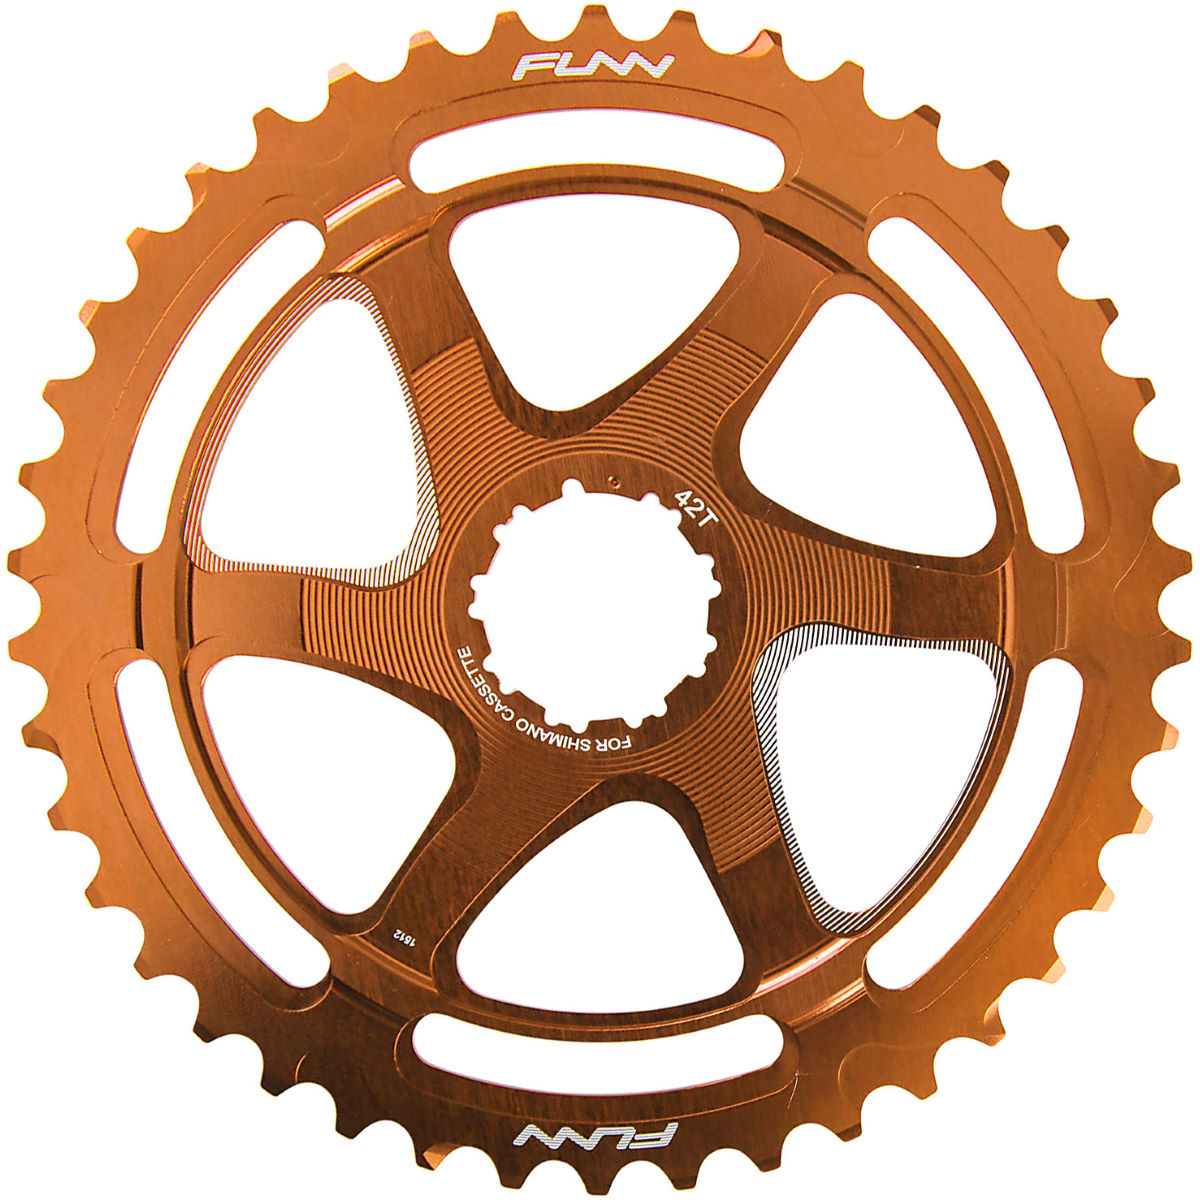 Funn Clinch Expander Sprocket - Cassettes